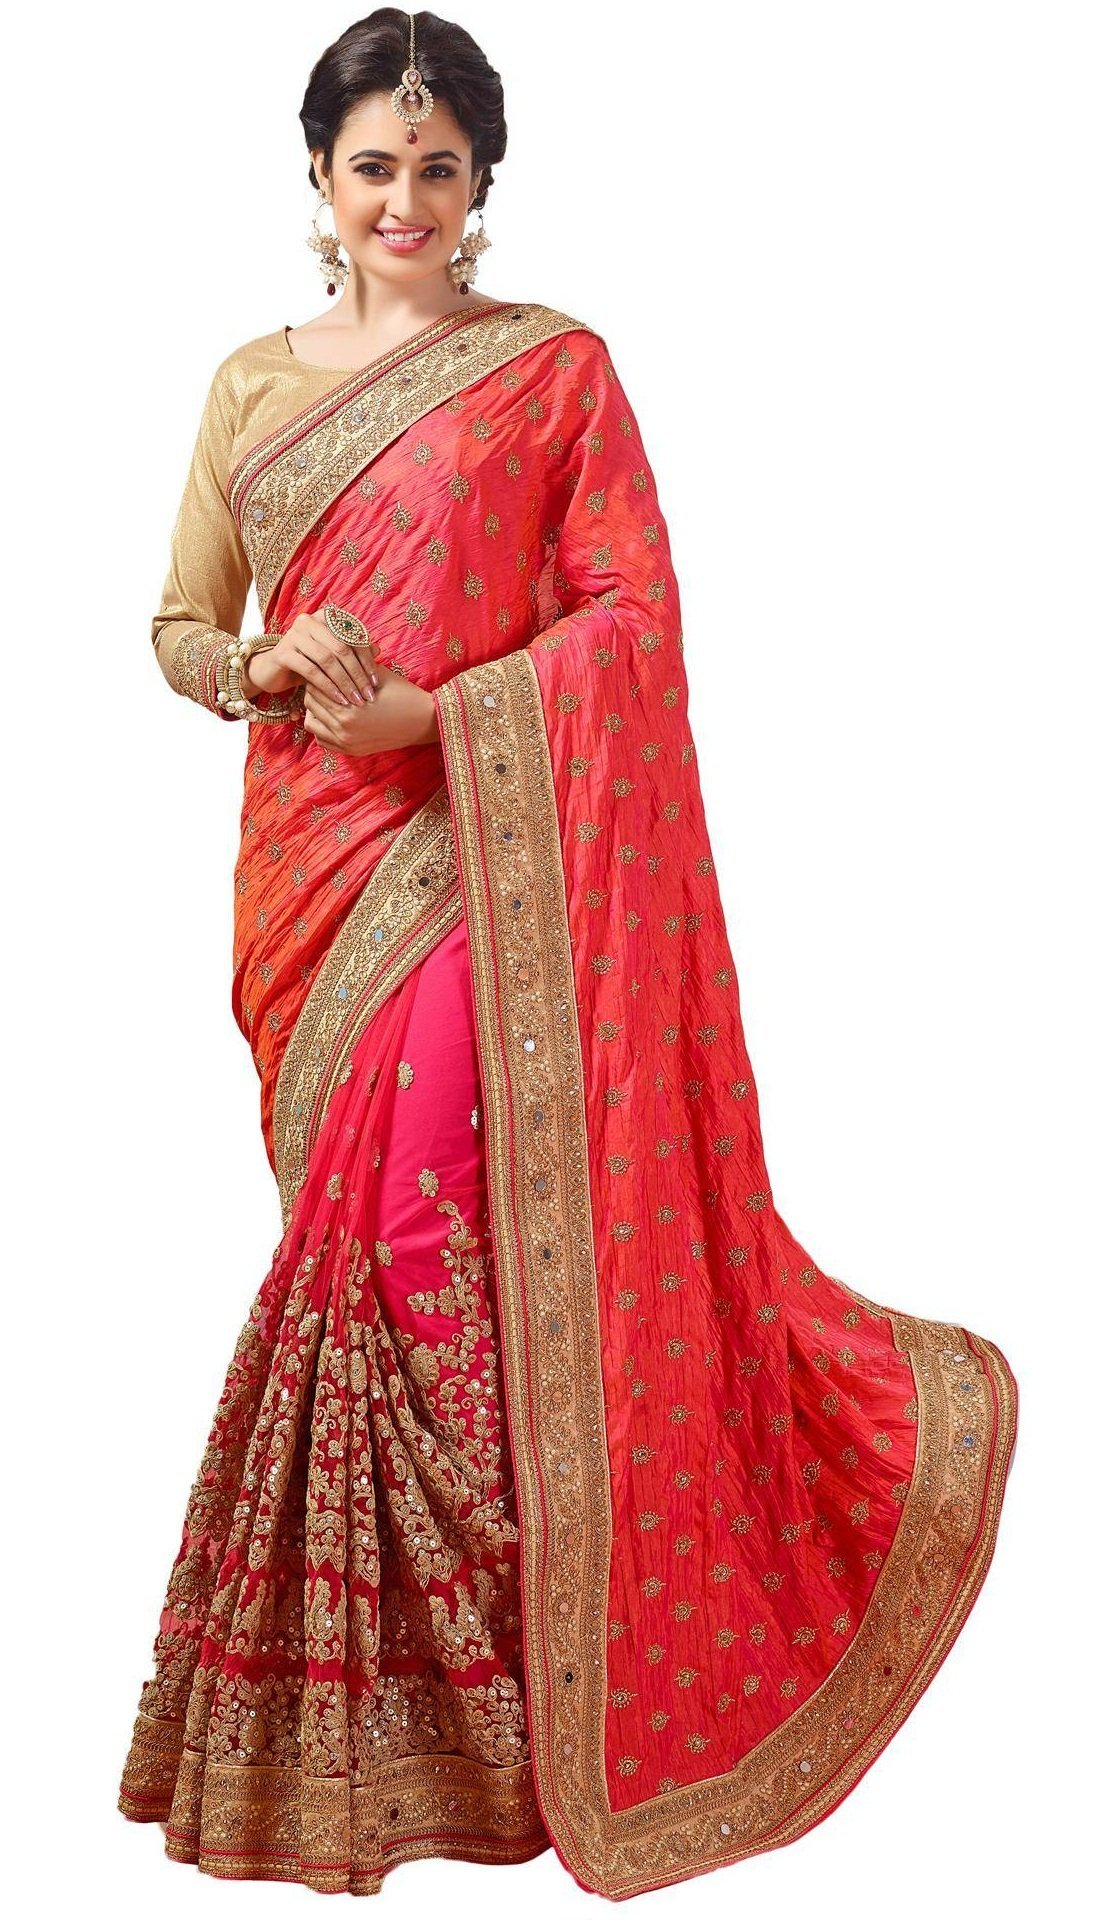 Nivah Fashion Women's Net Dhupion Silk Real Diamond With Embroidery Dori Work Sari Pink...K579A